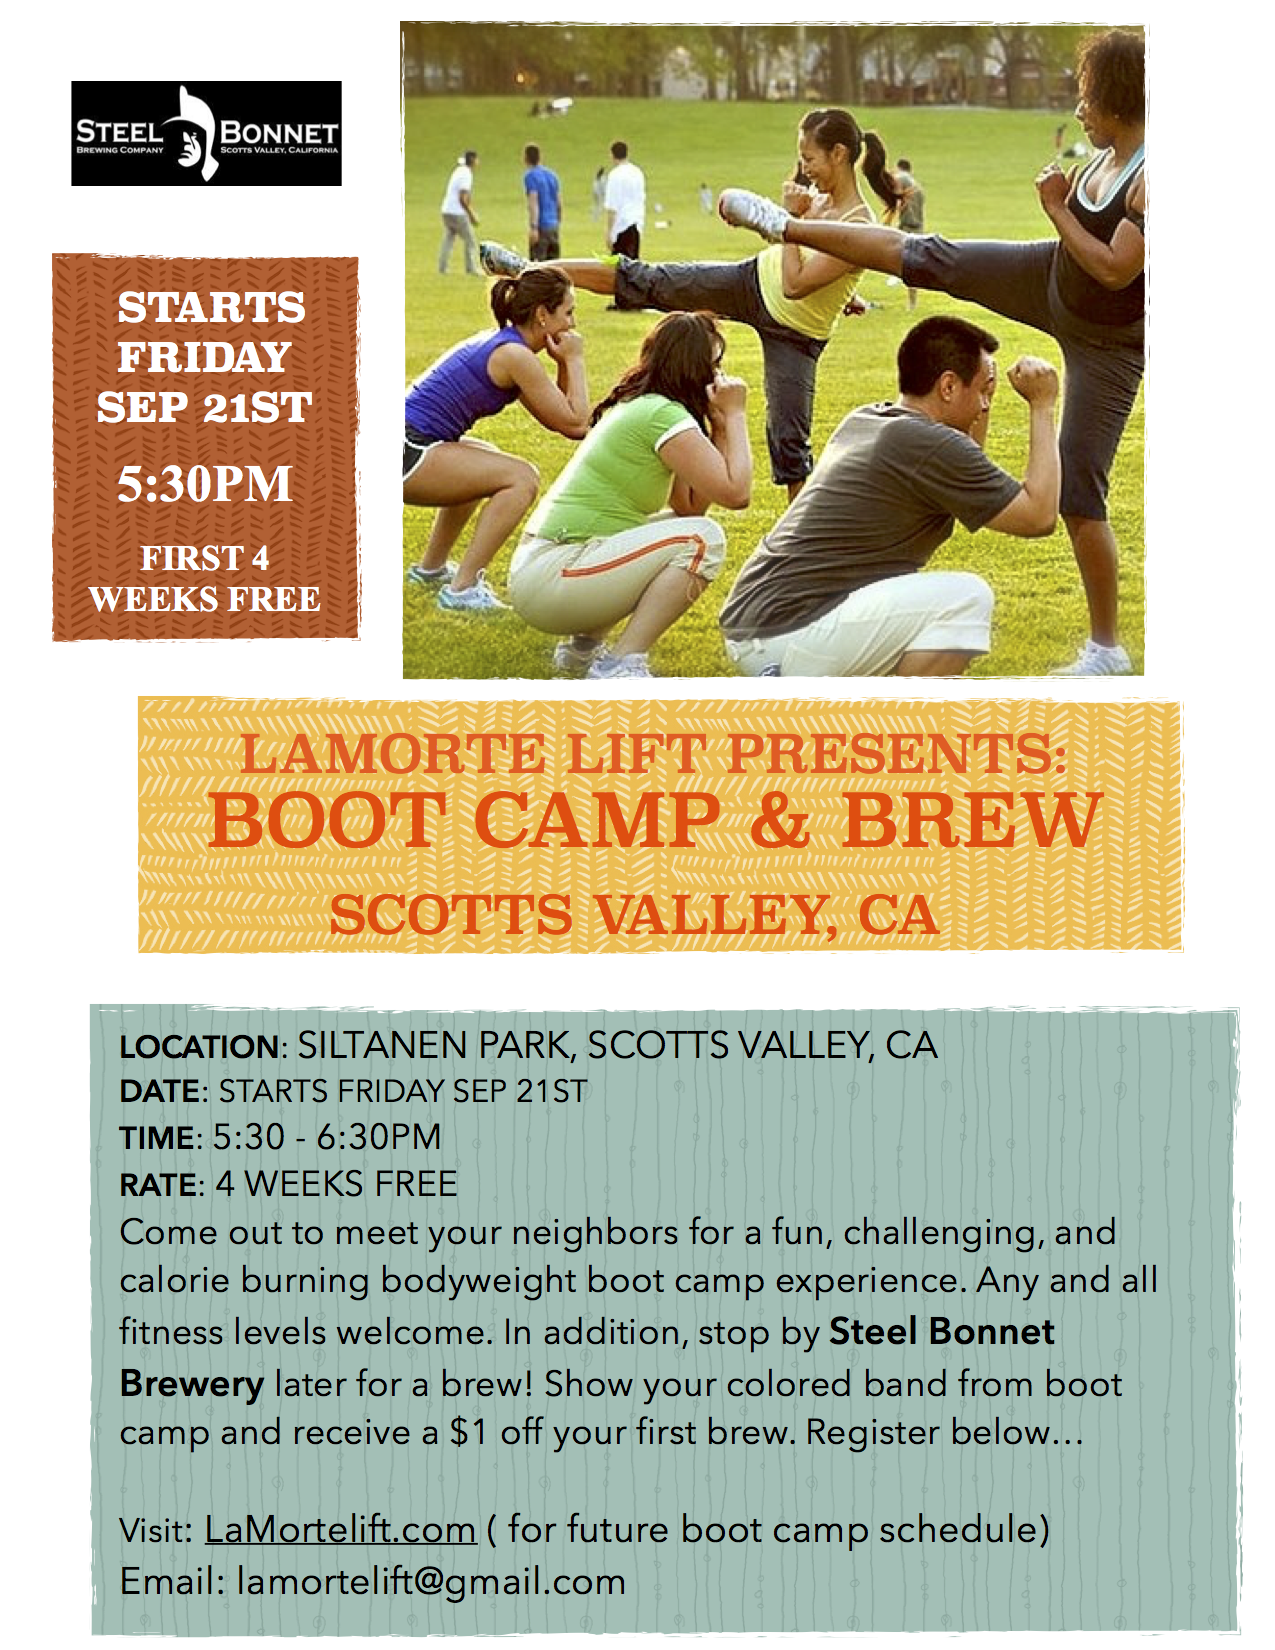 BOOT CAMP & BREW.png